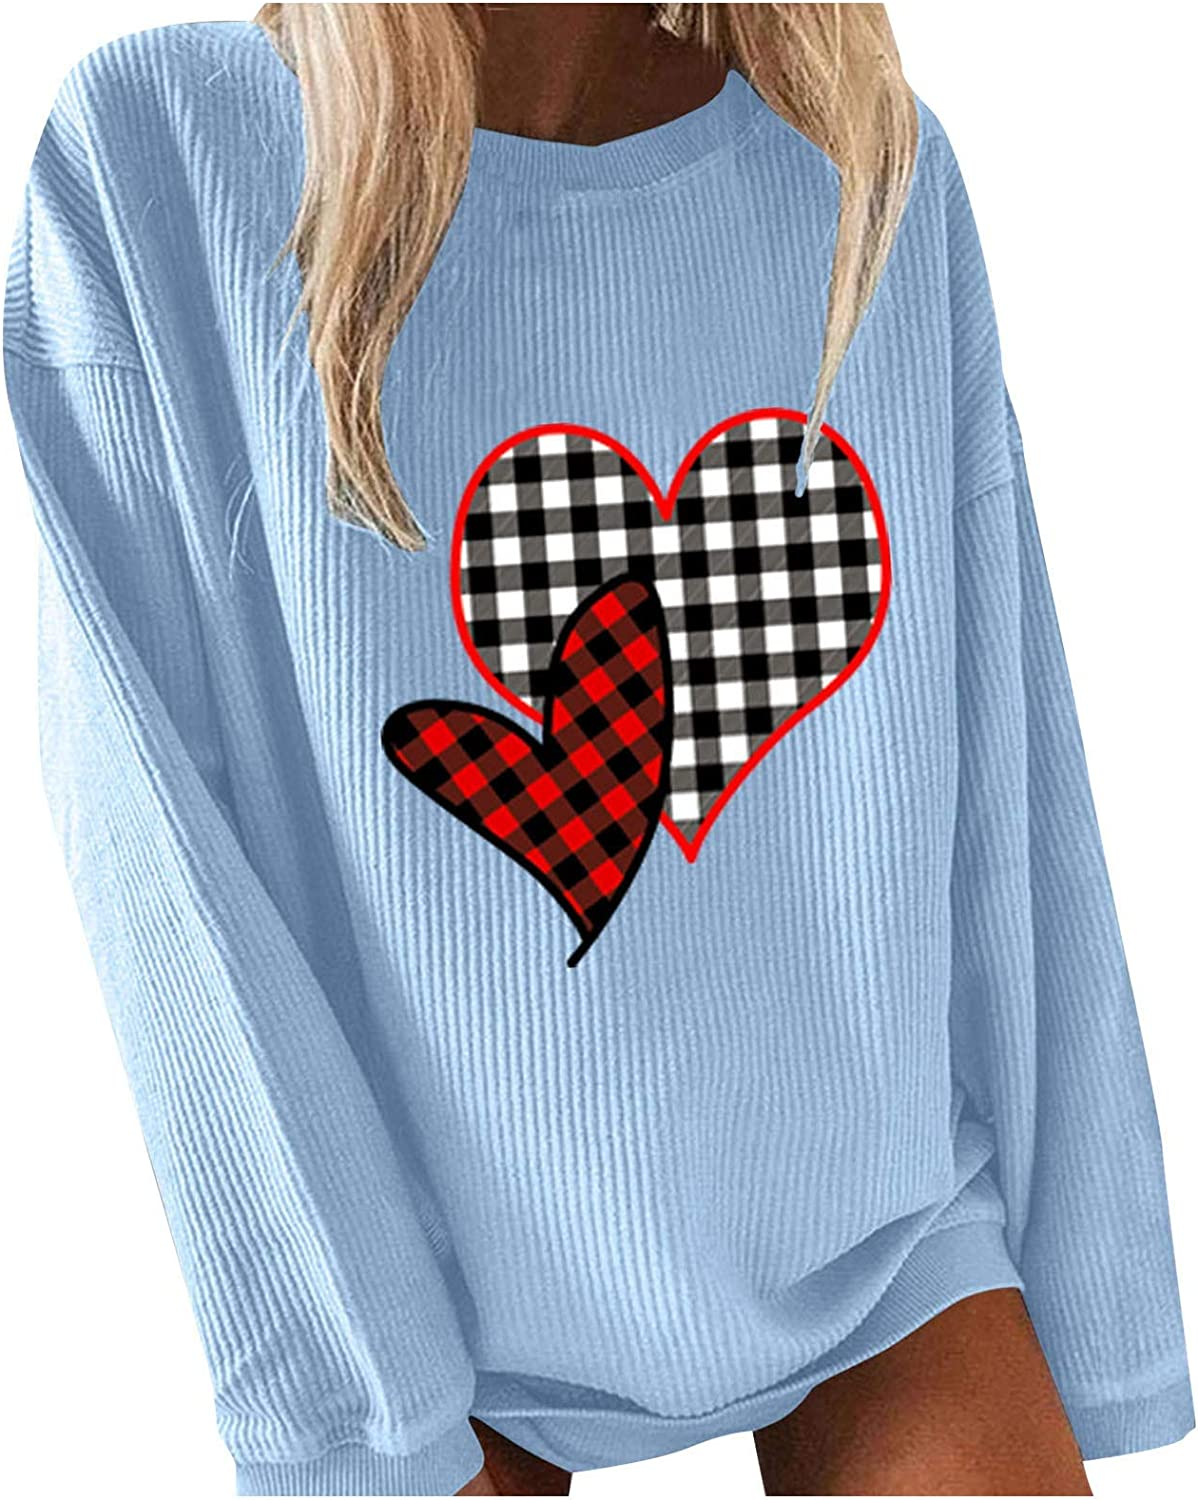 Evarend Women's Tops Casual Valentine's Day Pure Heart Print O-Neck Long Sleeves Thermal Pullover Sweatshirt Blouse Tops